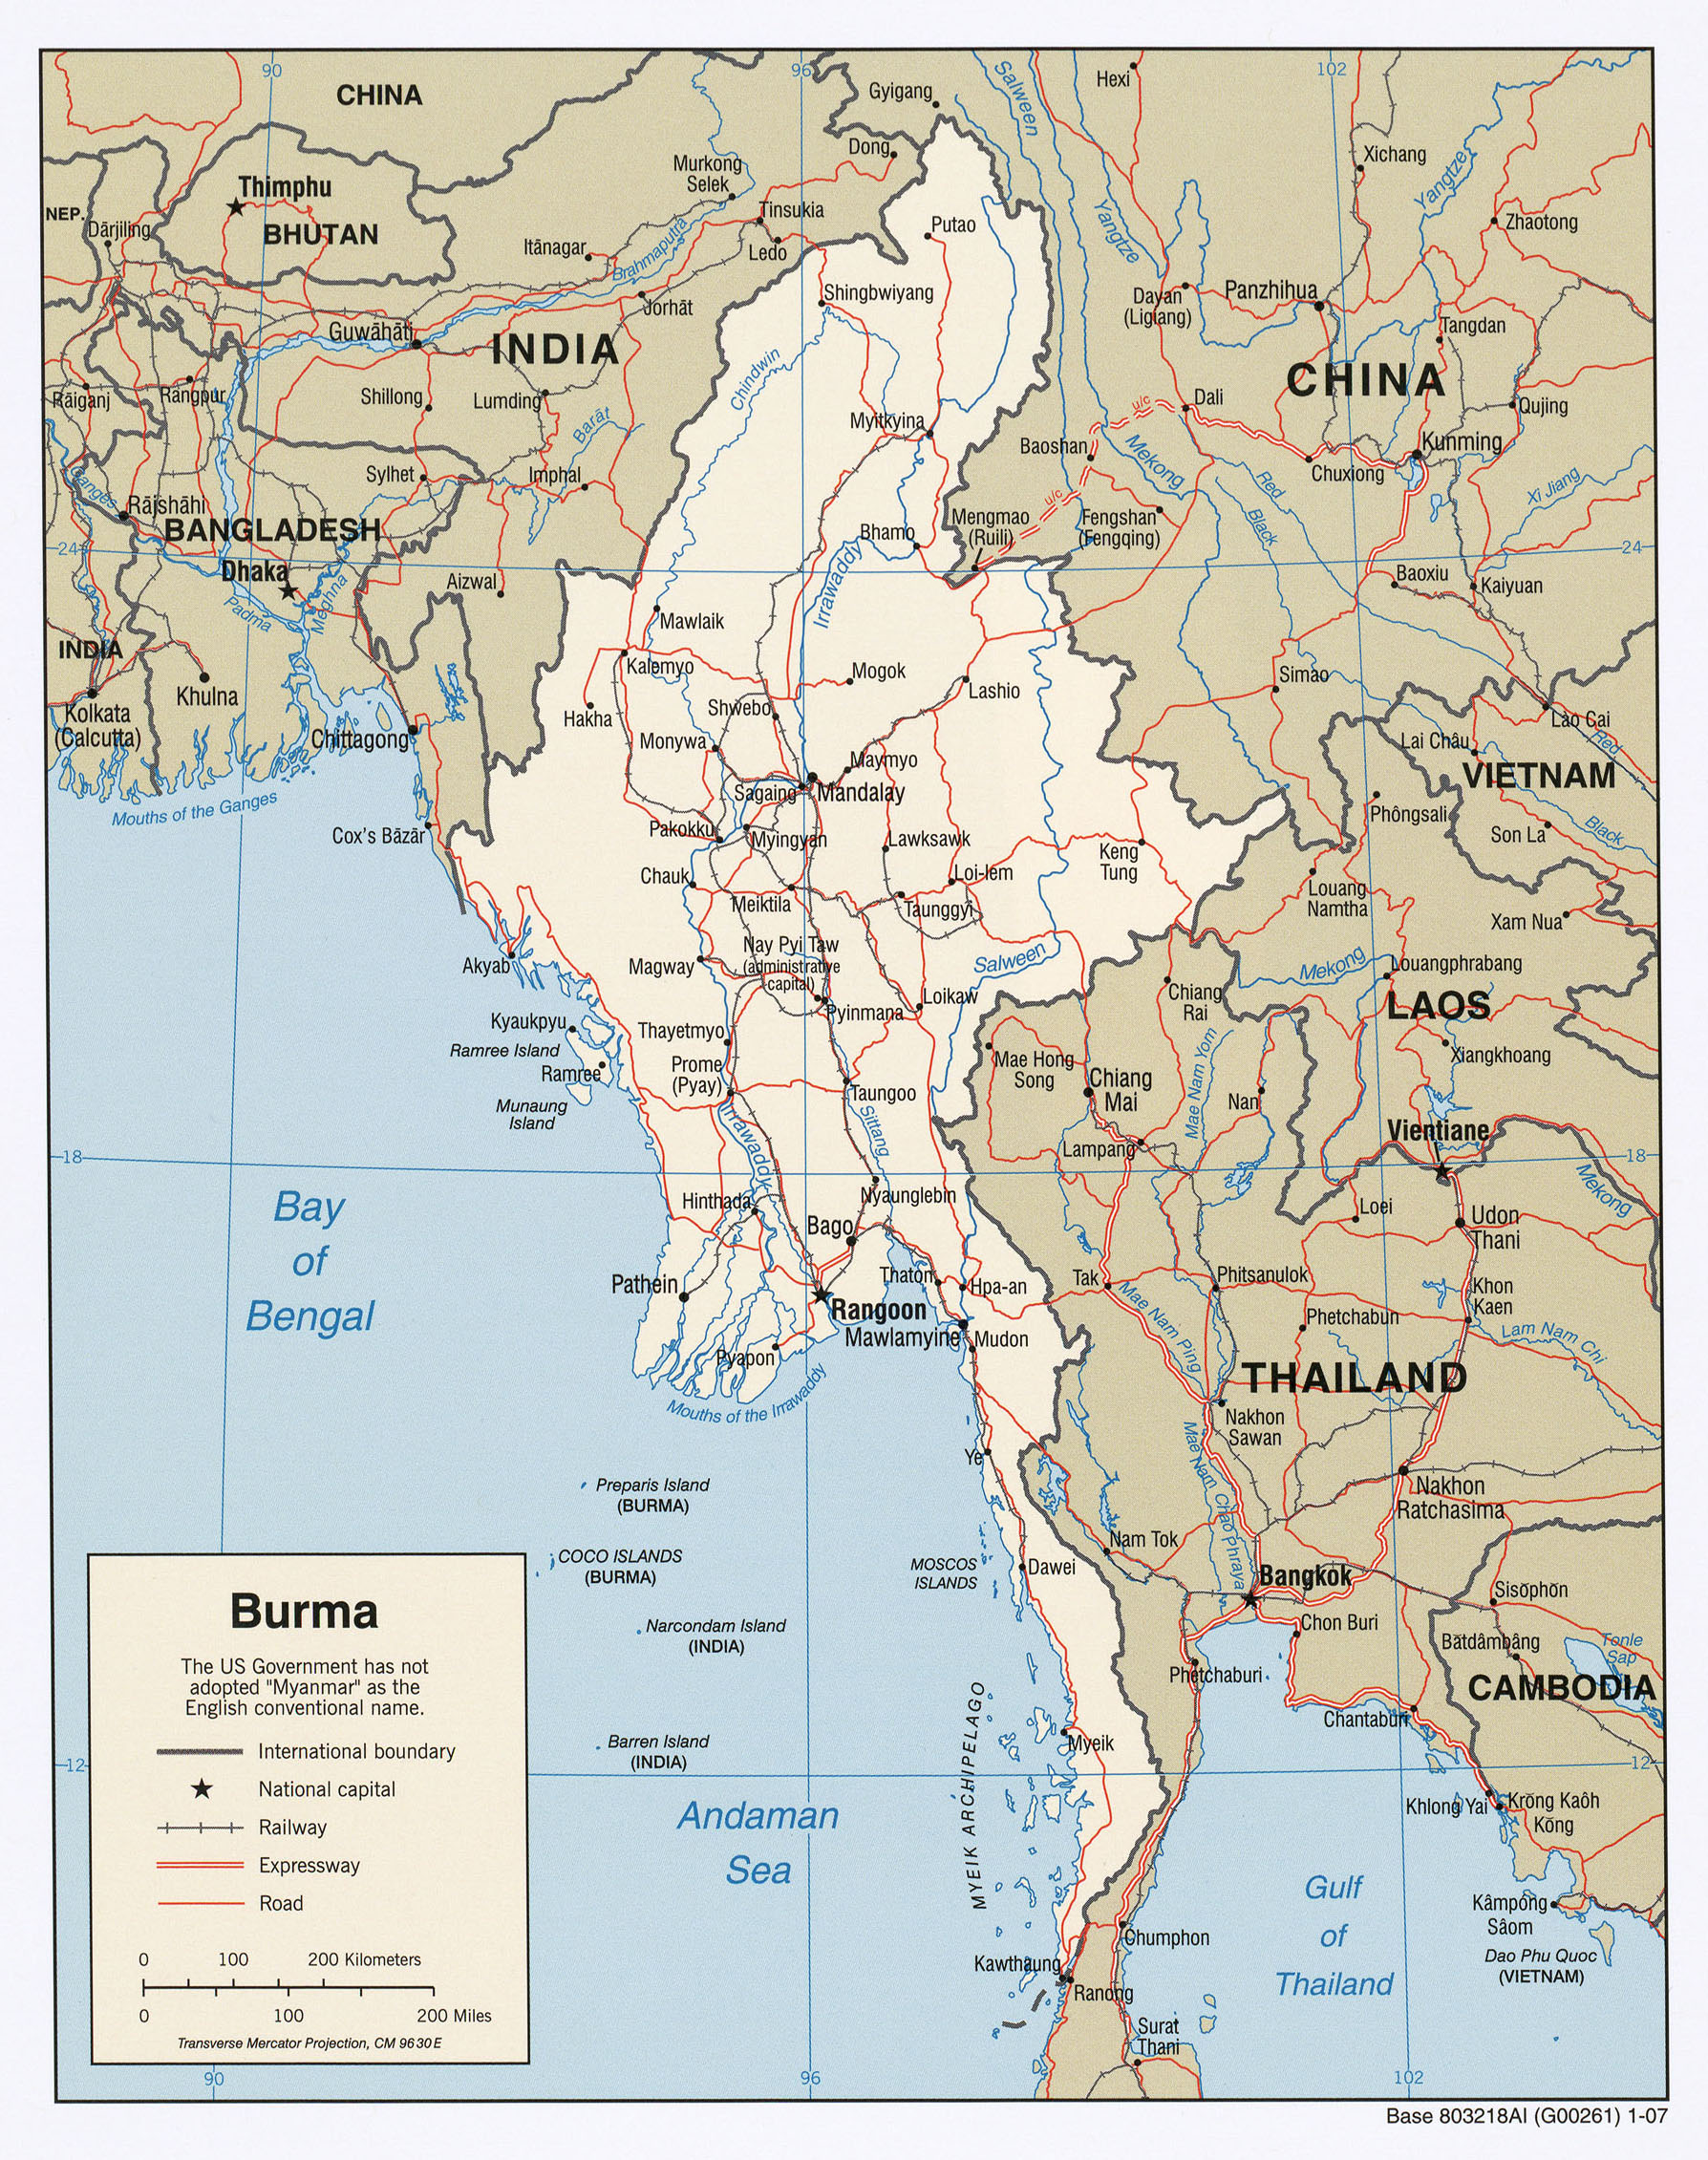 Map Collection of Asia: Asian Studies: Loyola University Chicago